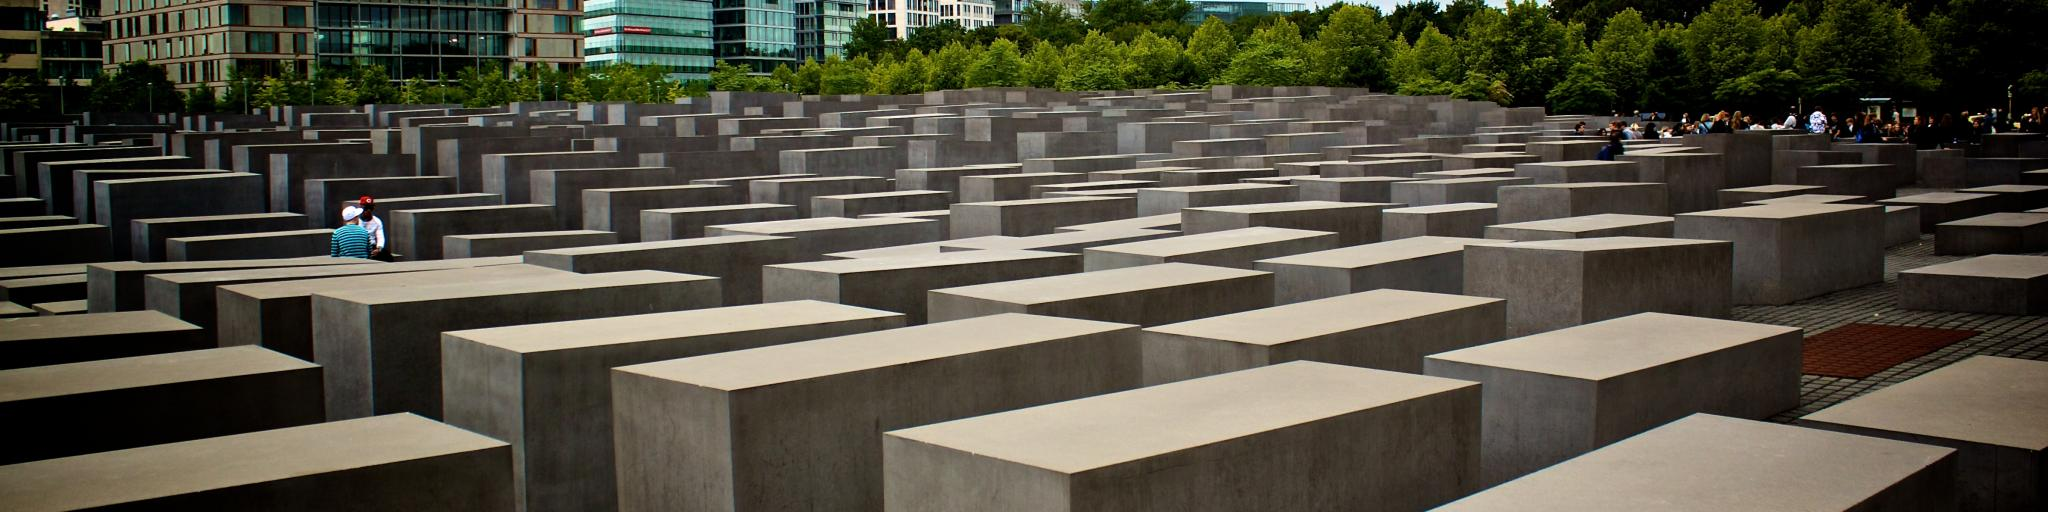 Tourists walk around the concrete blocks that are lined up like coffins at the Holocaust Memorial in Berlin